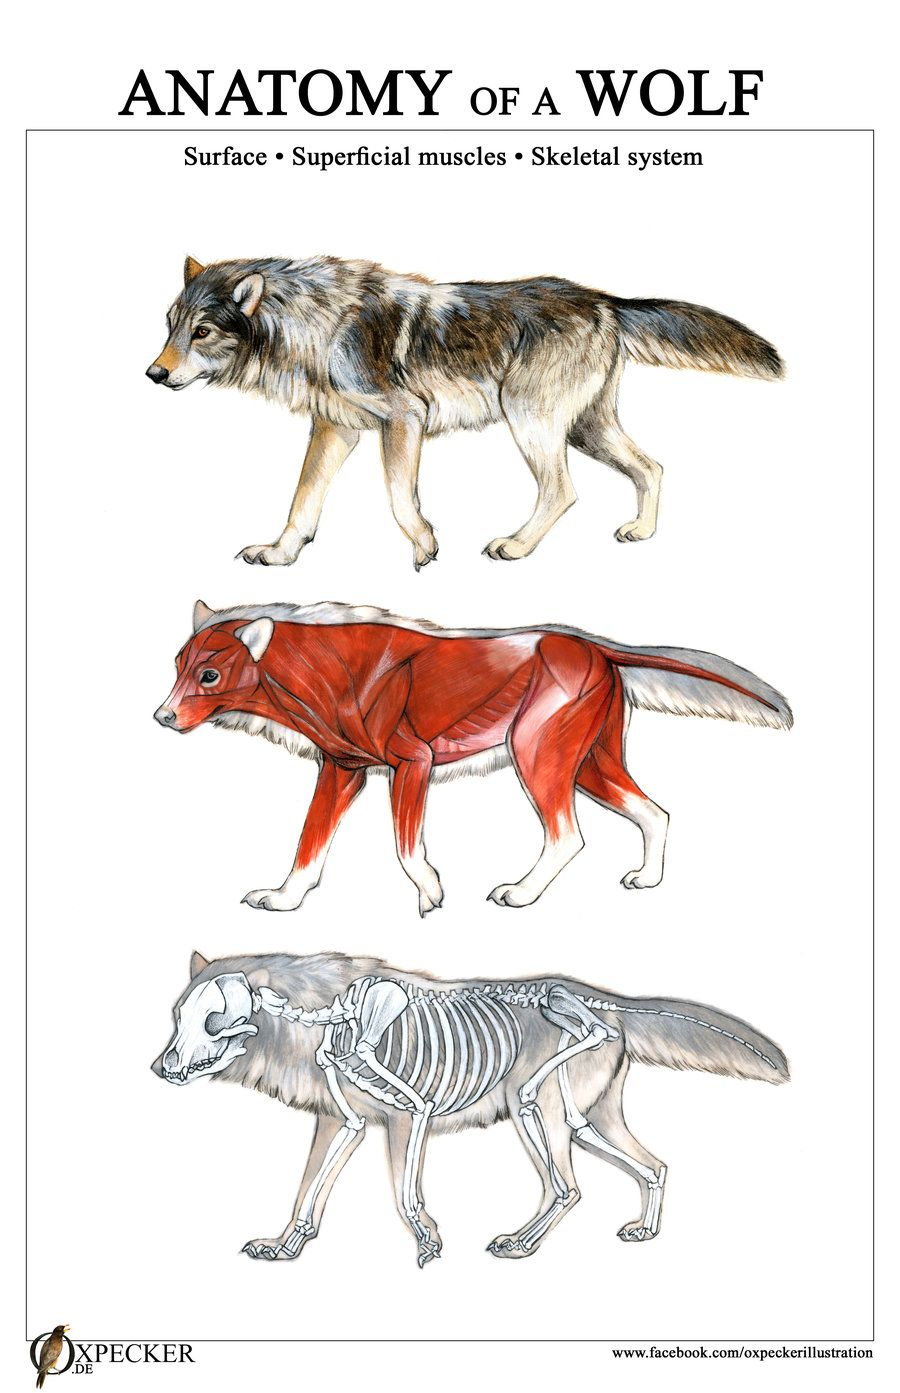 Anatomy of a Wolf by oxpecker | rxc | Pinterest | Anatomía animal ...